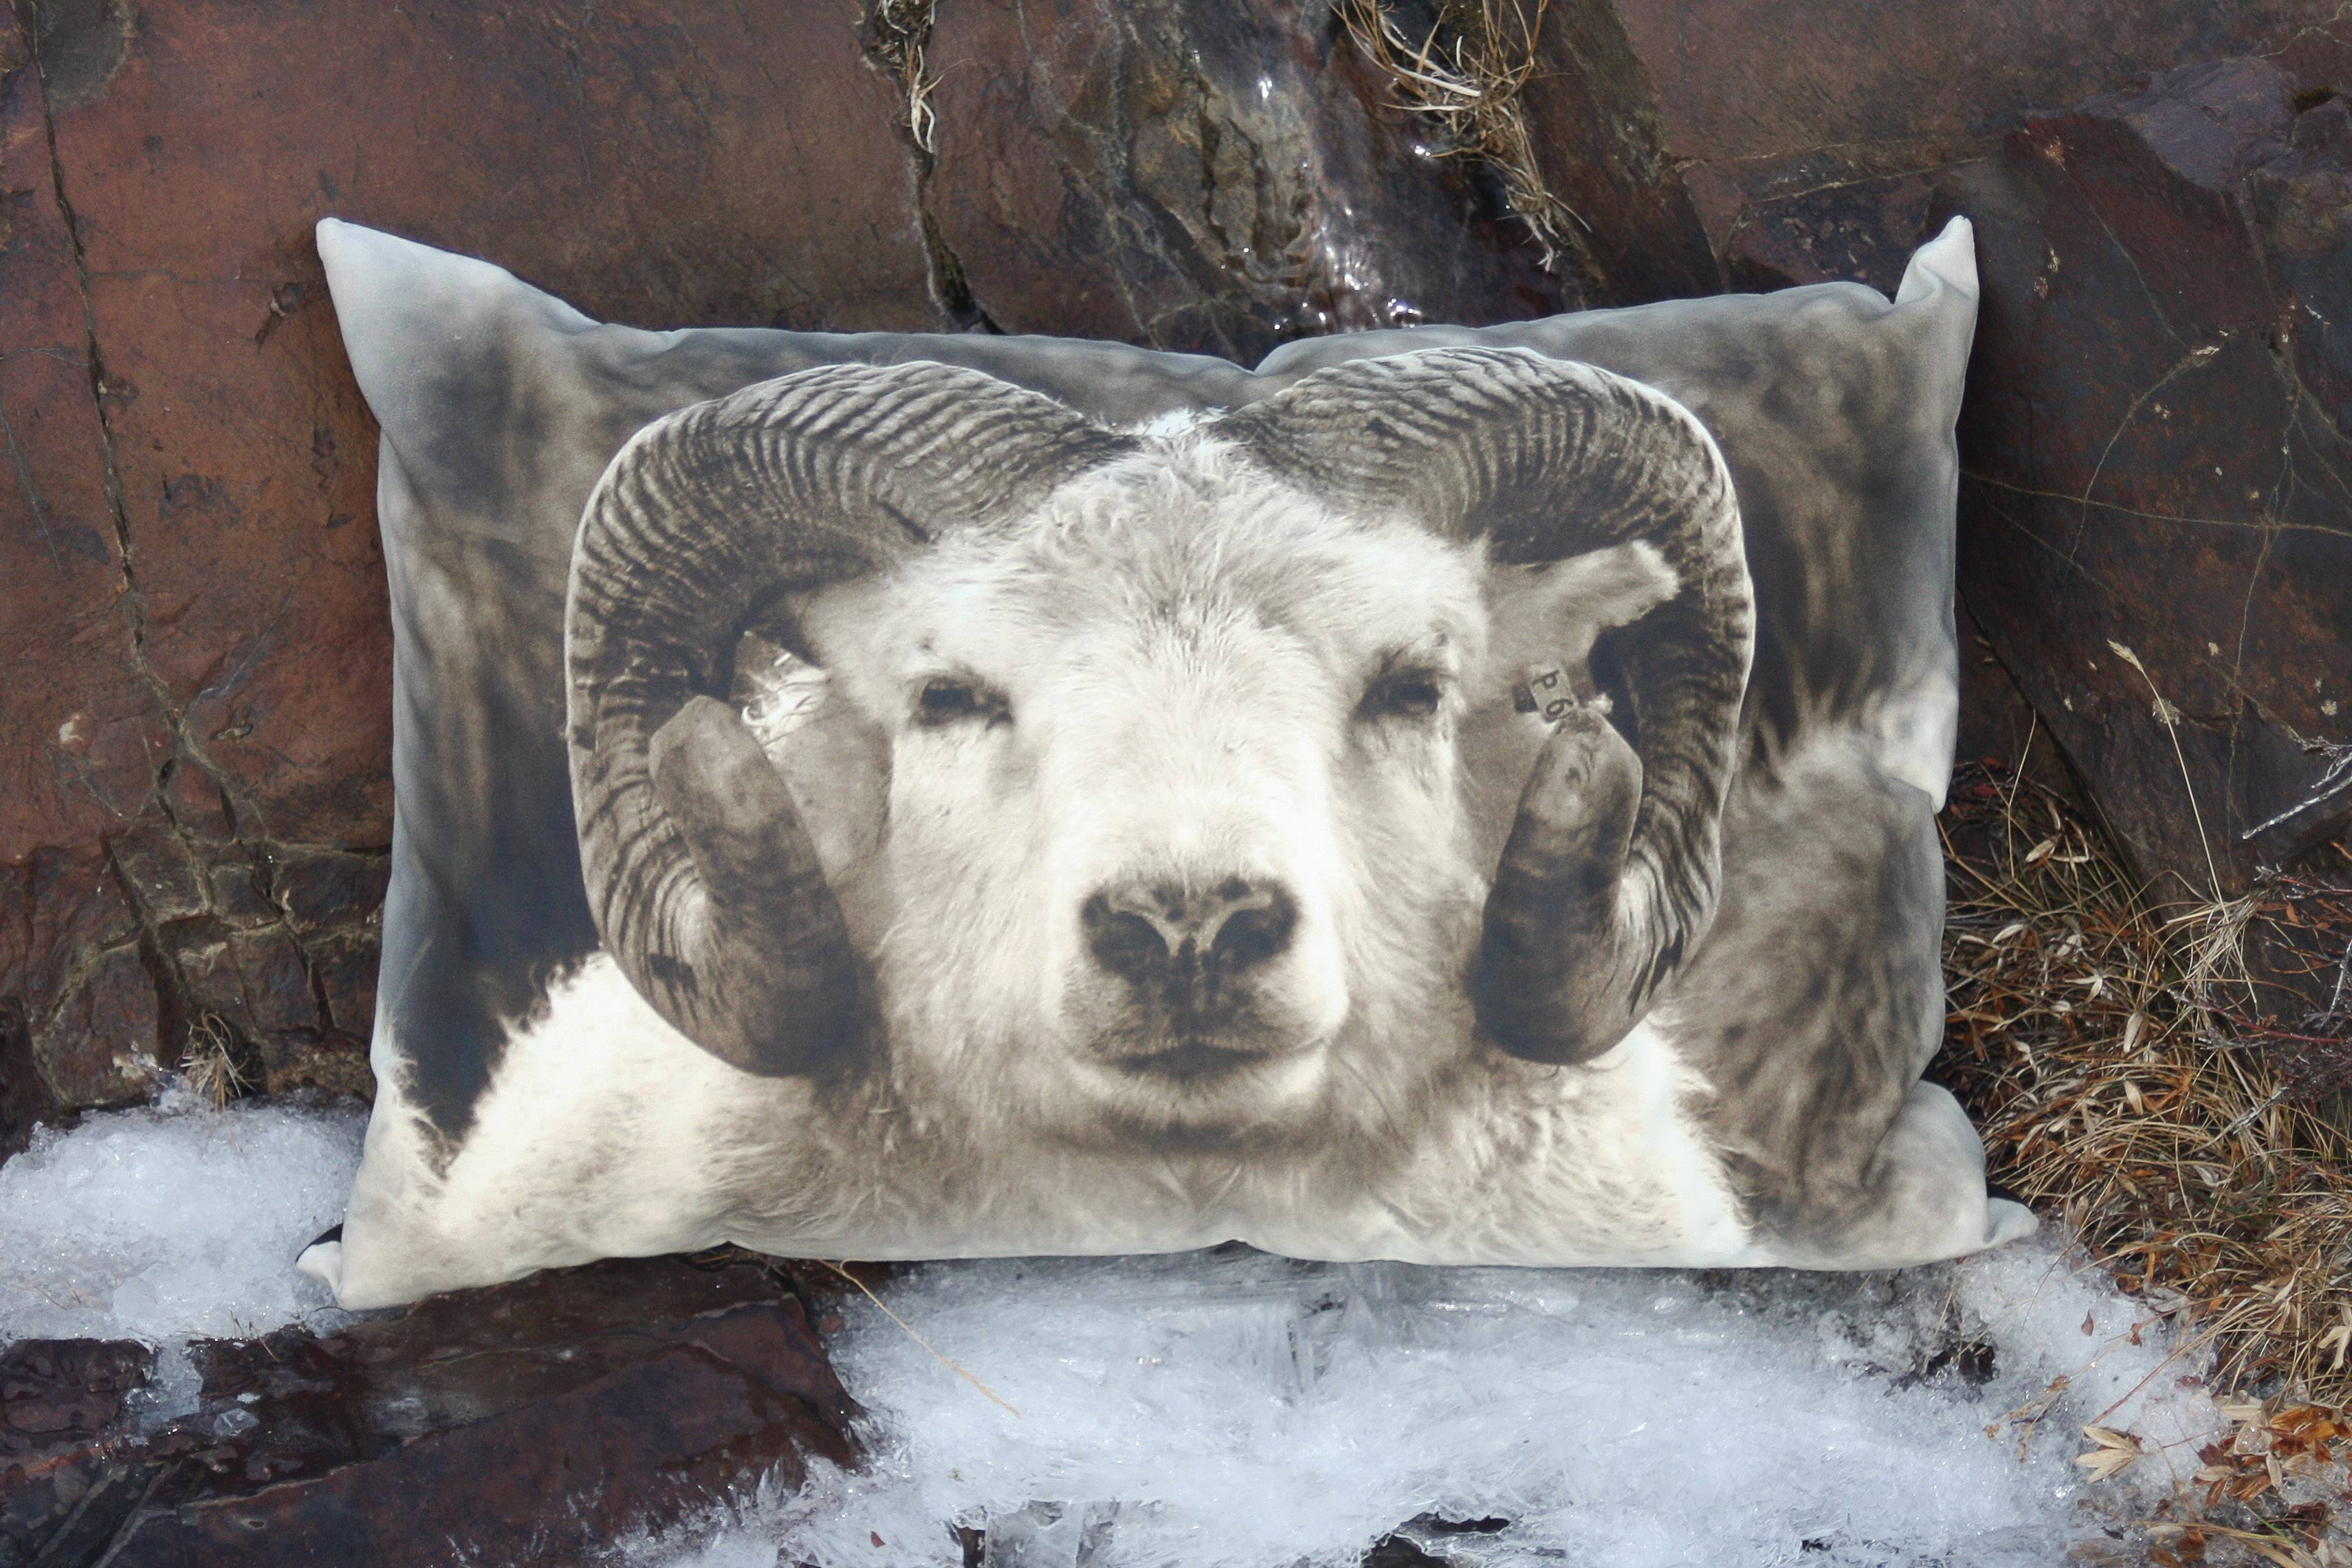 Icelandic horses, rams, reindeer and other natural icons of the landscape are brought to life by Lagdur in visually powerful photoprinted pillows.